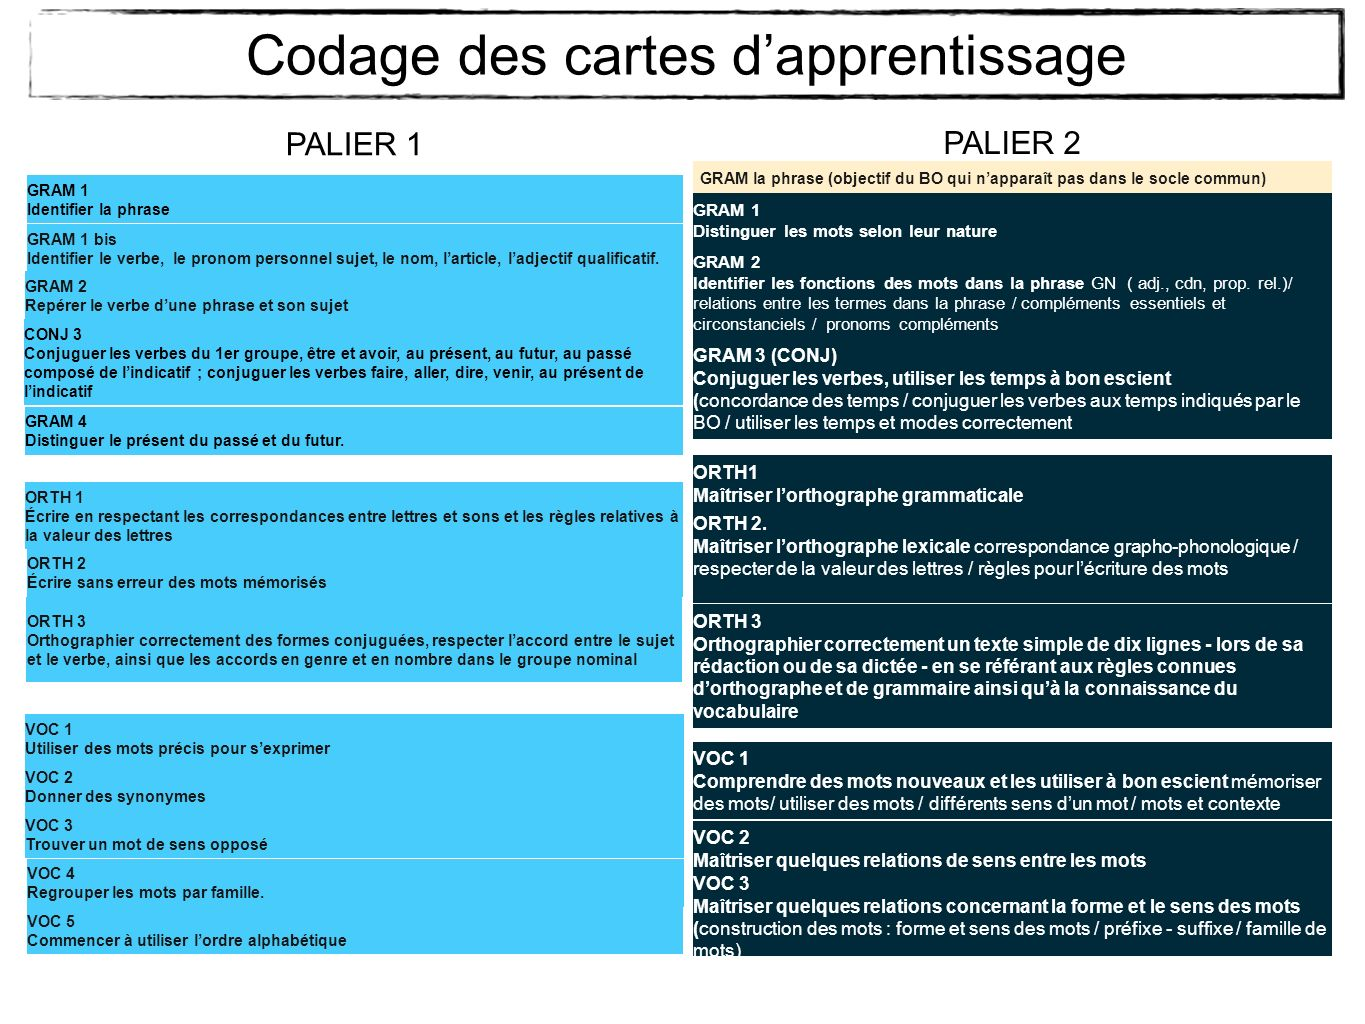 Codage des cartes d'apprentissage